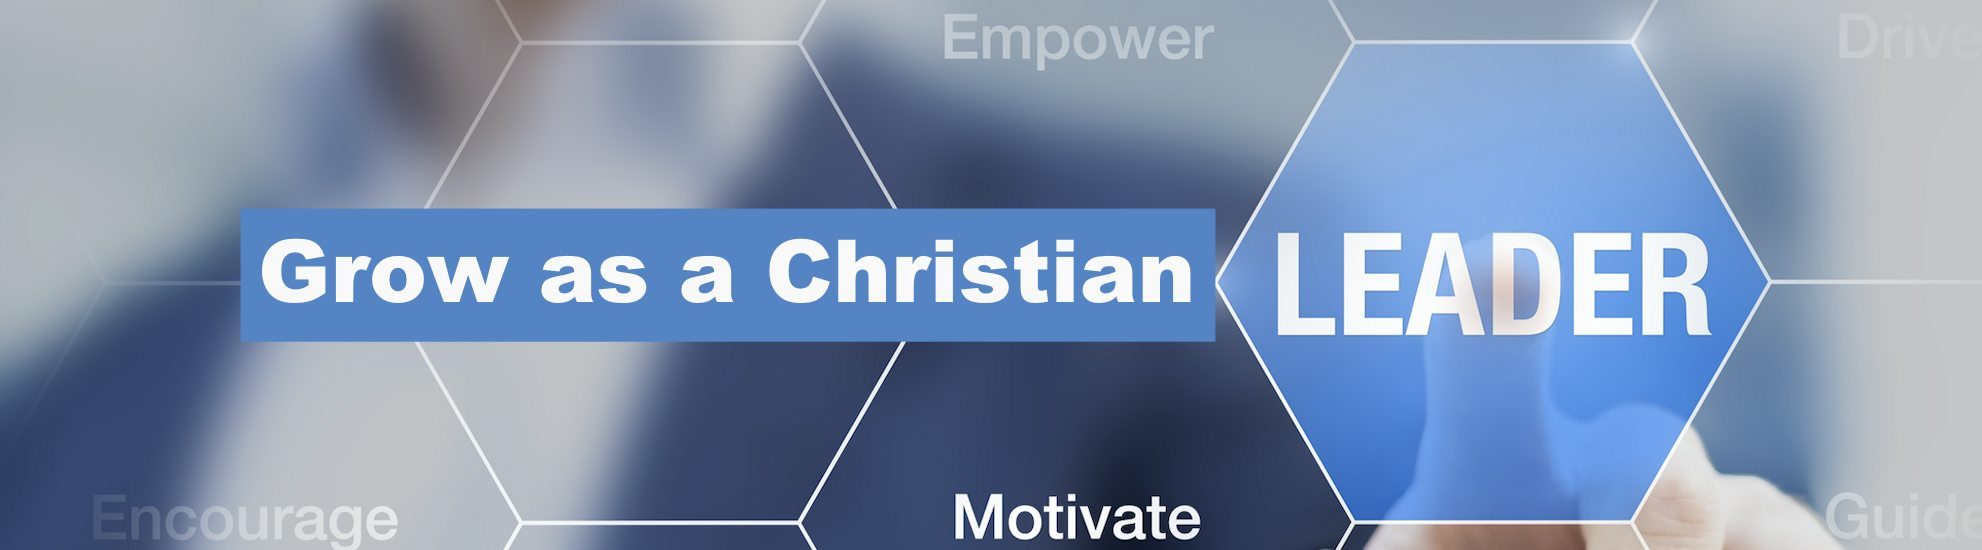 Grow As A Christian Leaders Banner